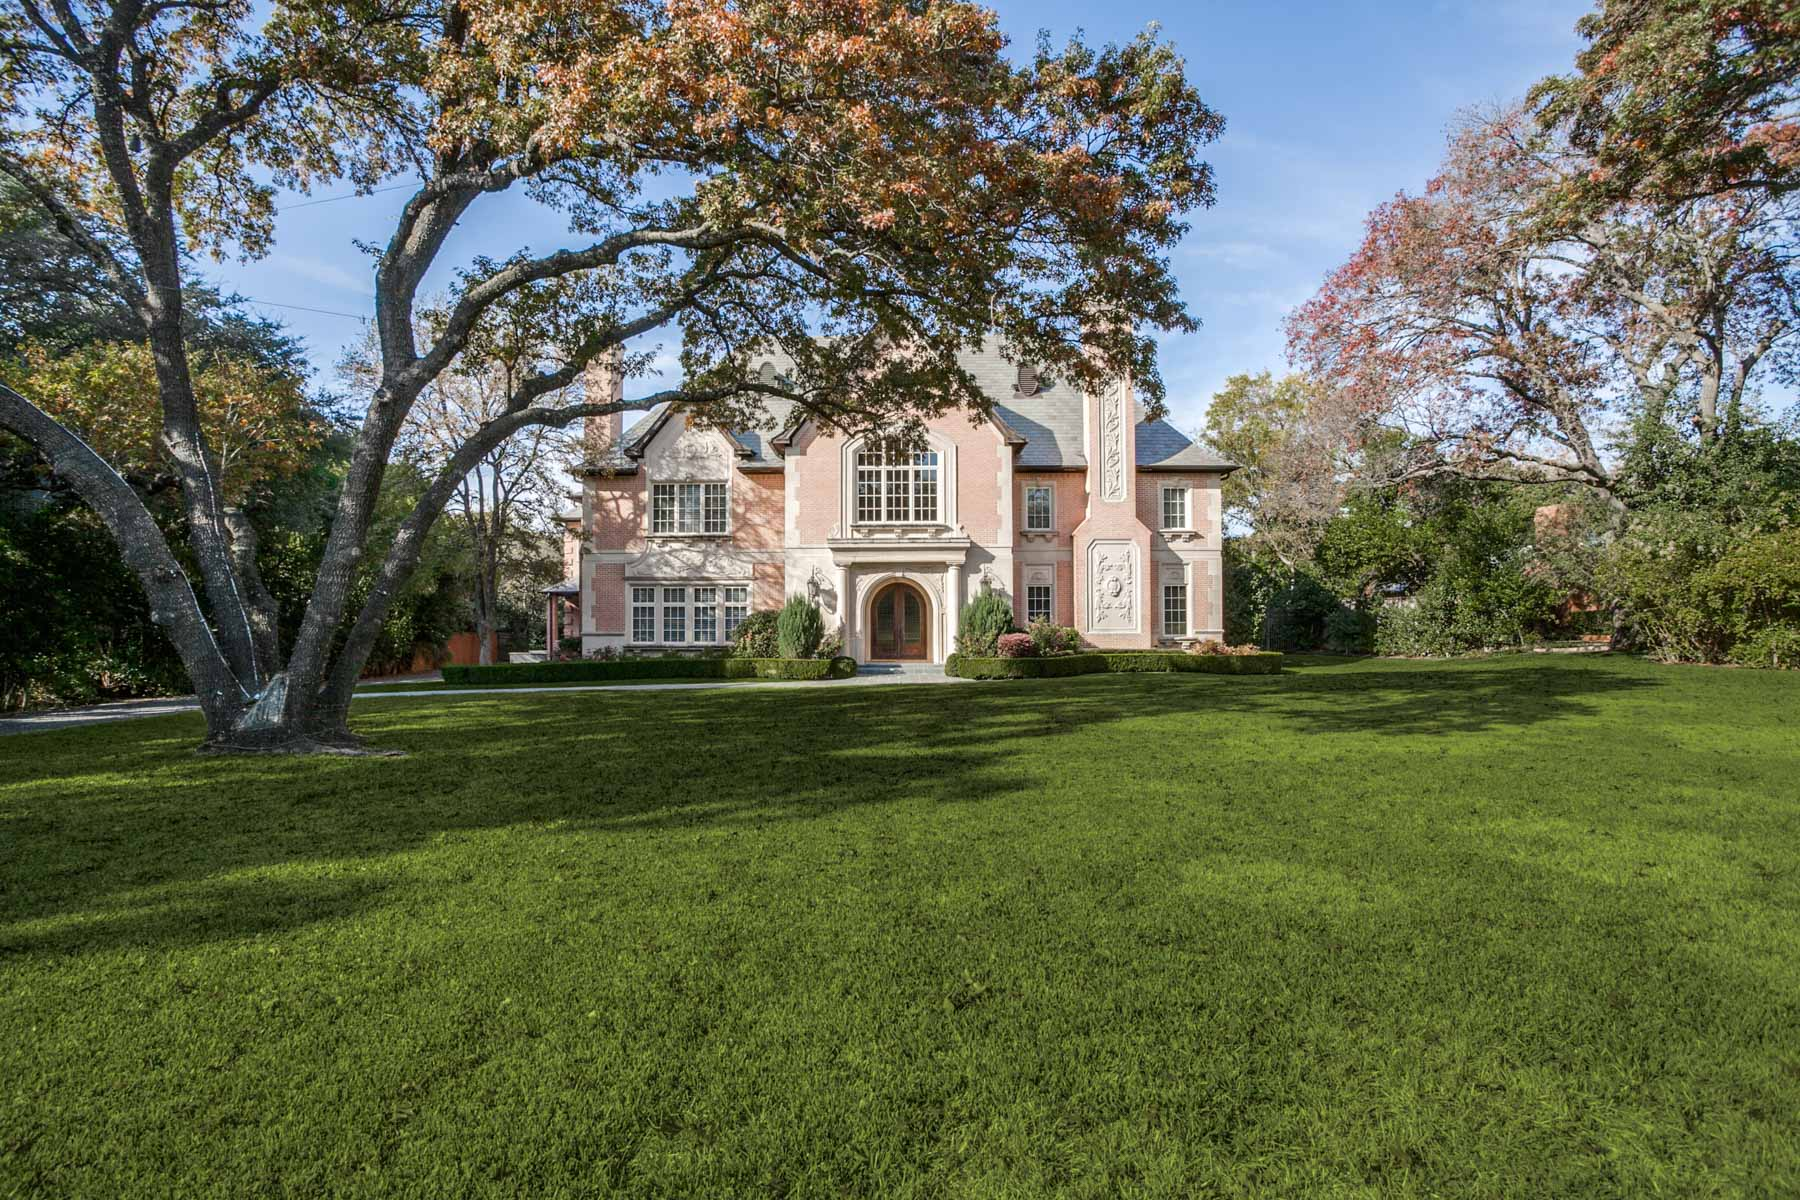 Maison unifamiliale pour l Vente à 5131 Shadywood Lane, Dallas 5131 Shadywood Ln Dallas, Texas, 75209 États-Unis